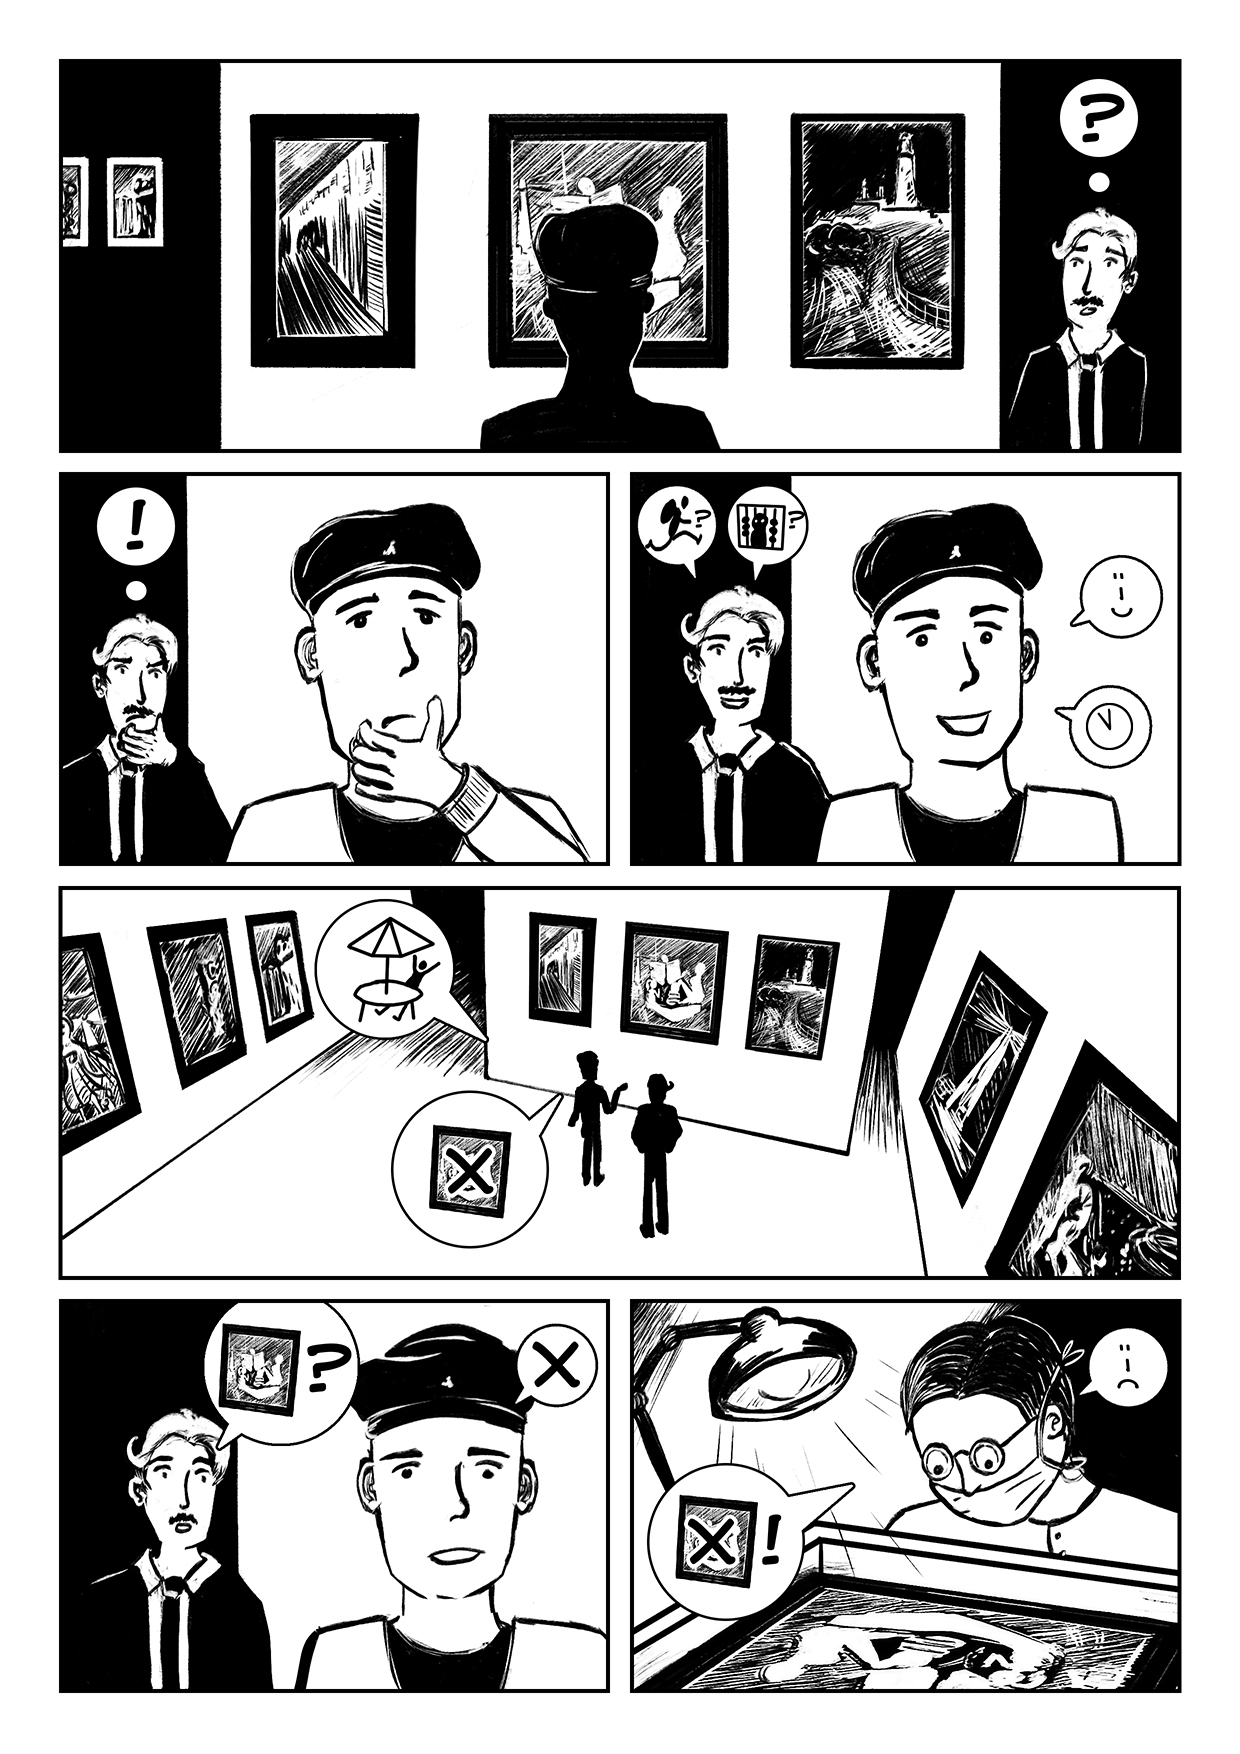 Holiday Heist Comic page 1, a comic about two detectives tracking down an art thief.